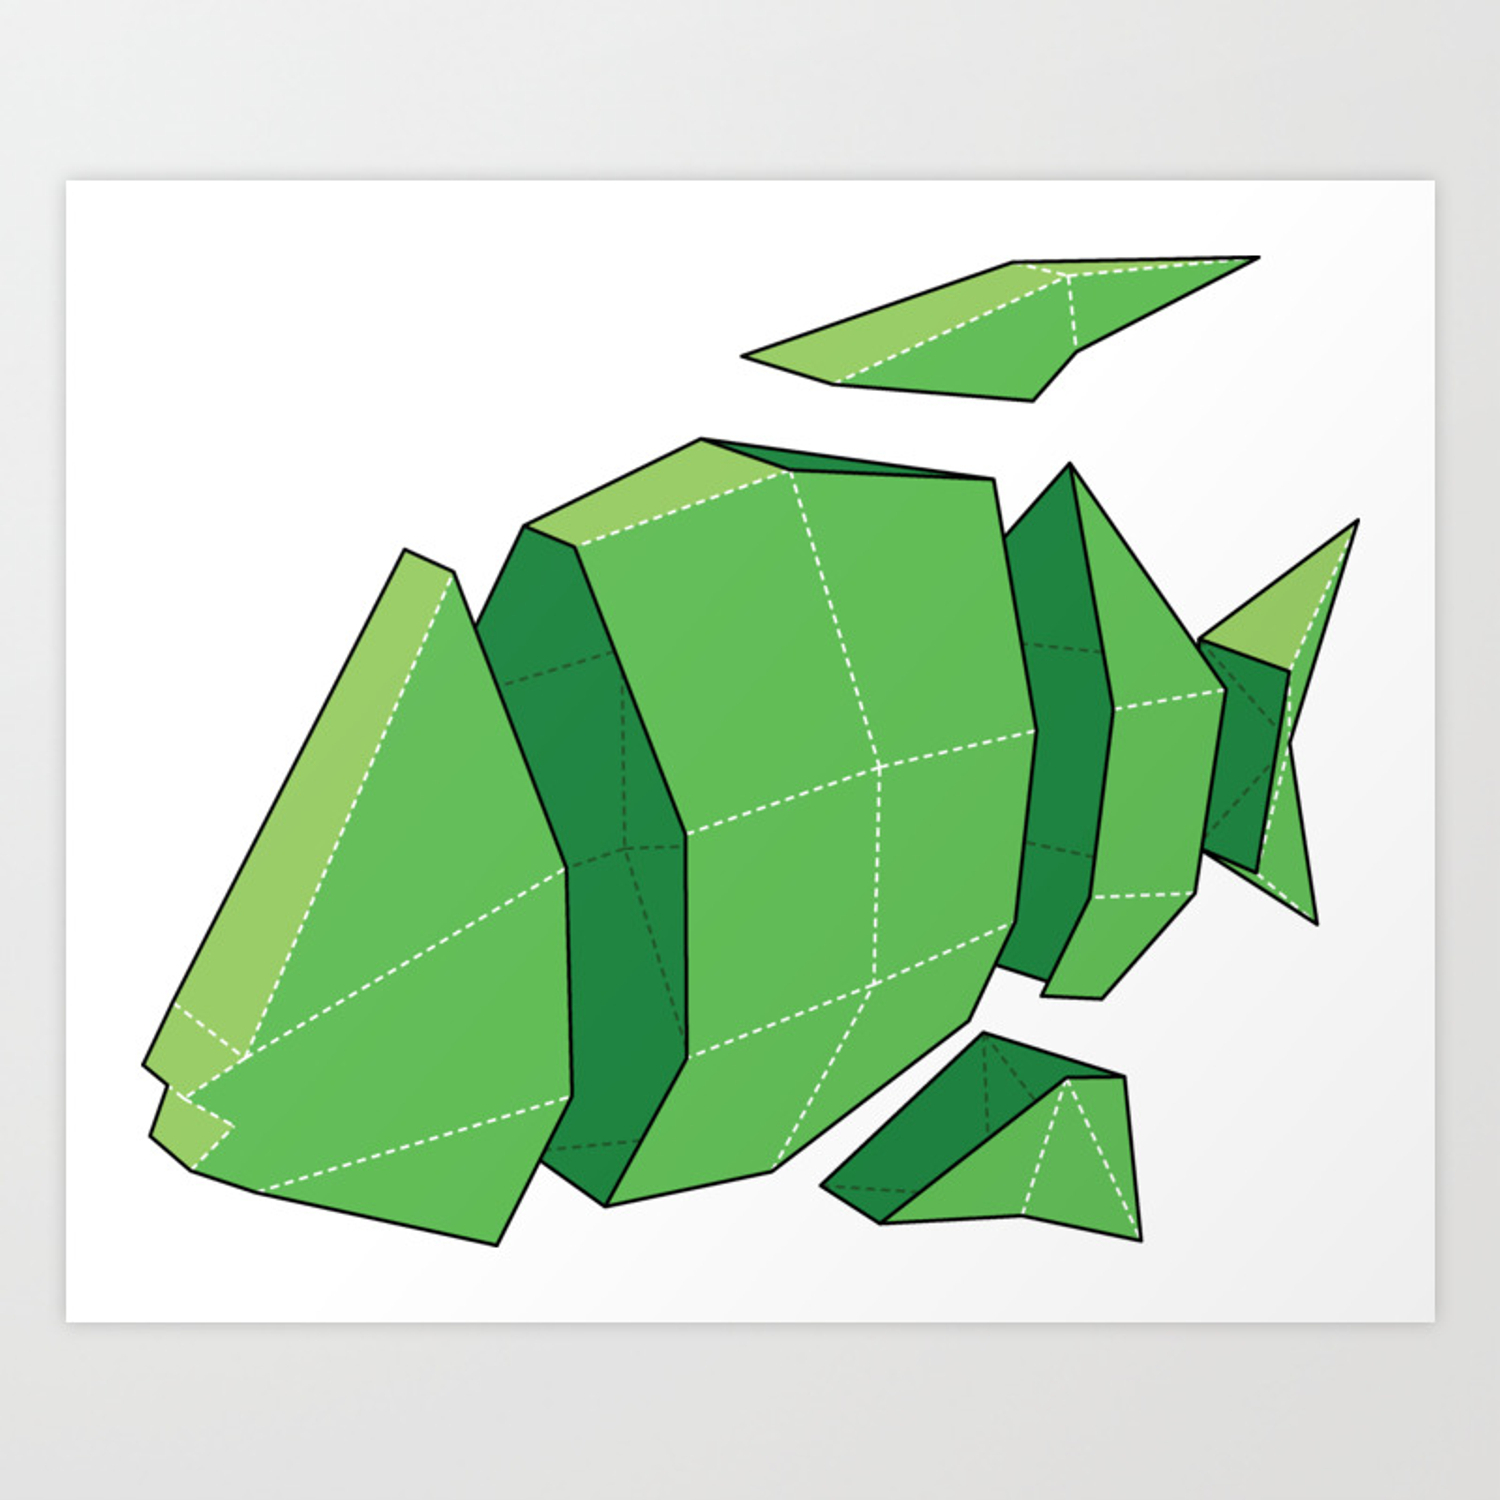 How to Make Paper Craft Fish for Kids Illustration Of A 3d Paper Craft Fish Model Art Print